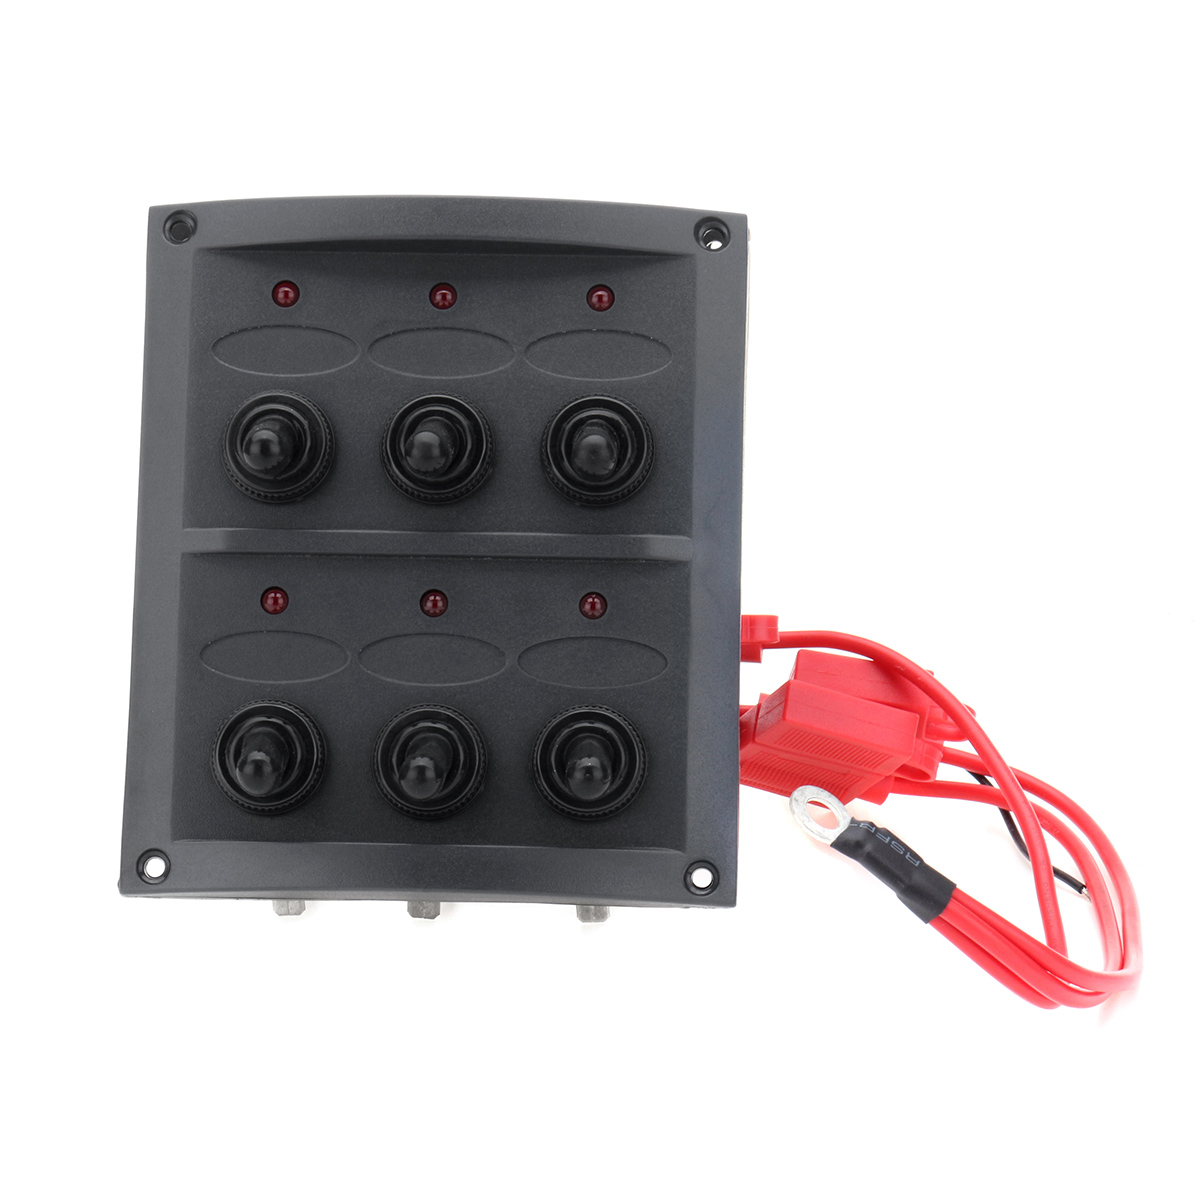 Dc v gang toggle switch panel red led light a blade